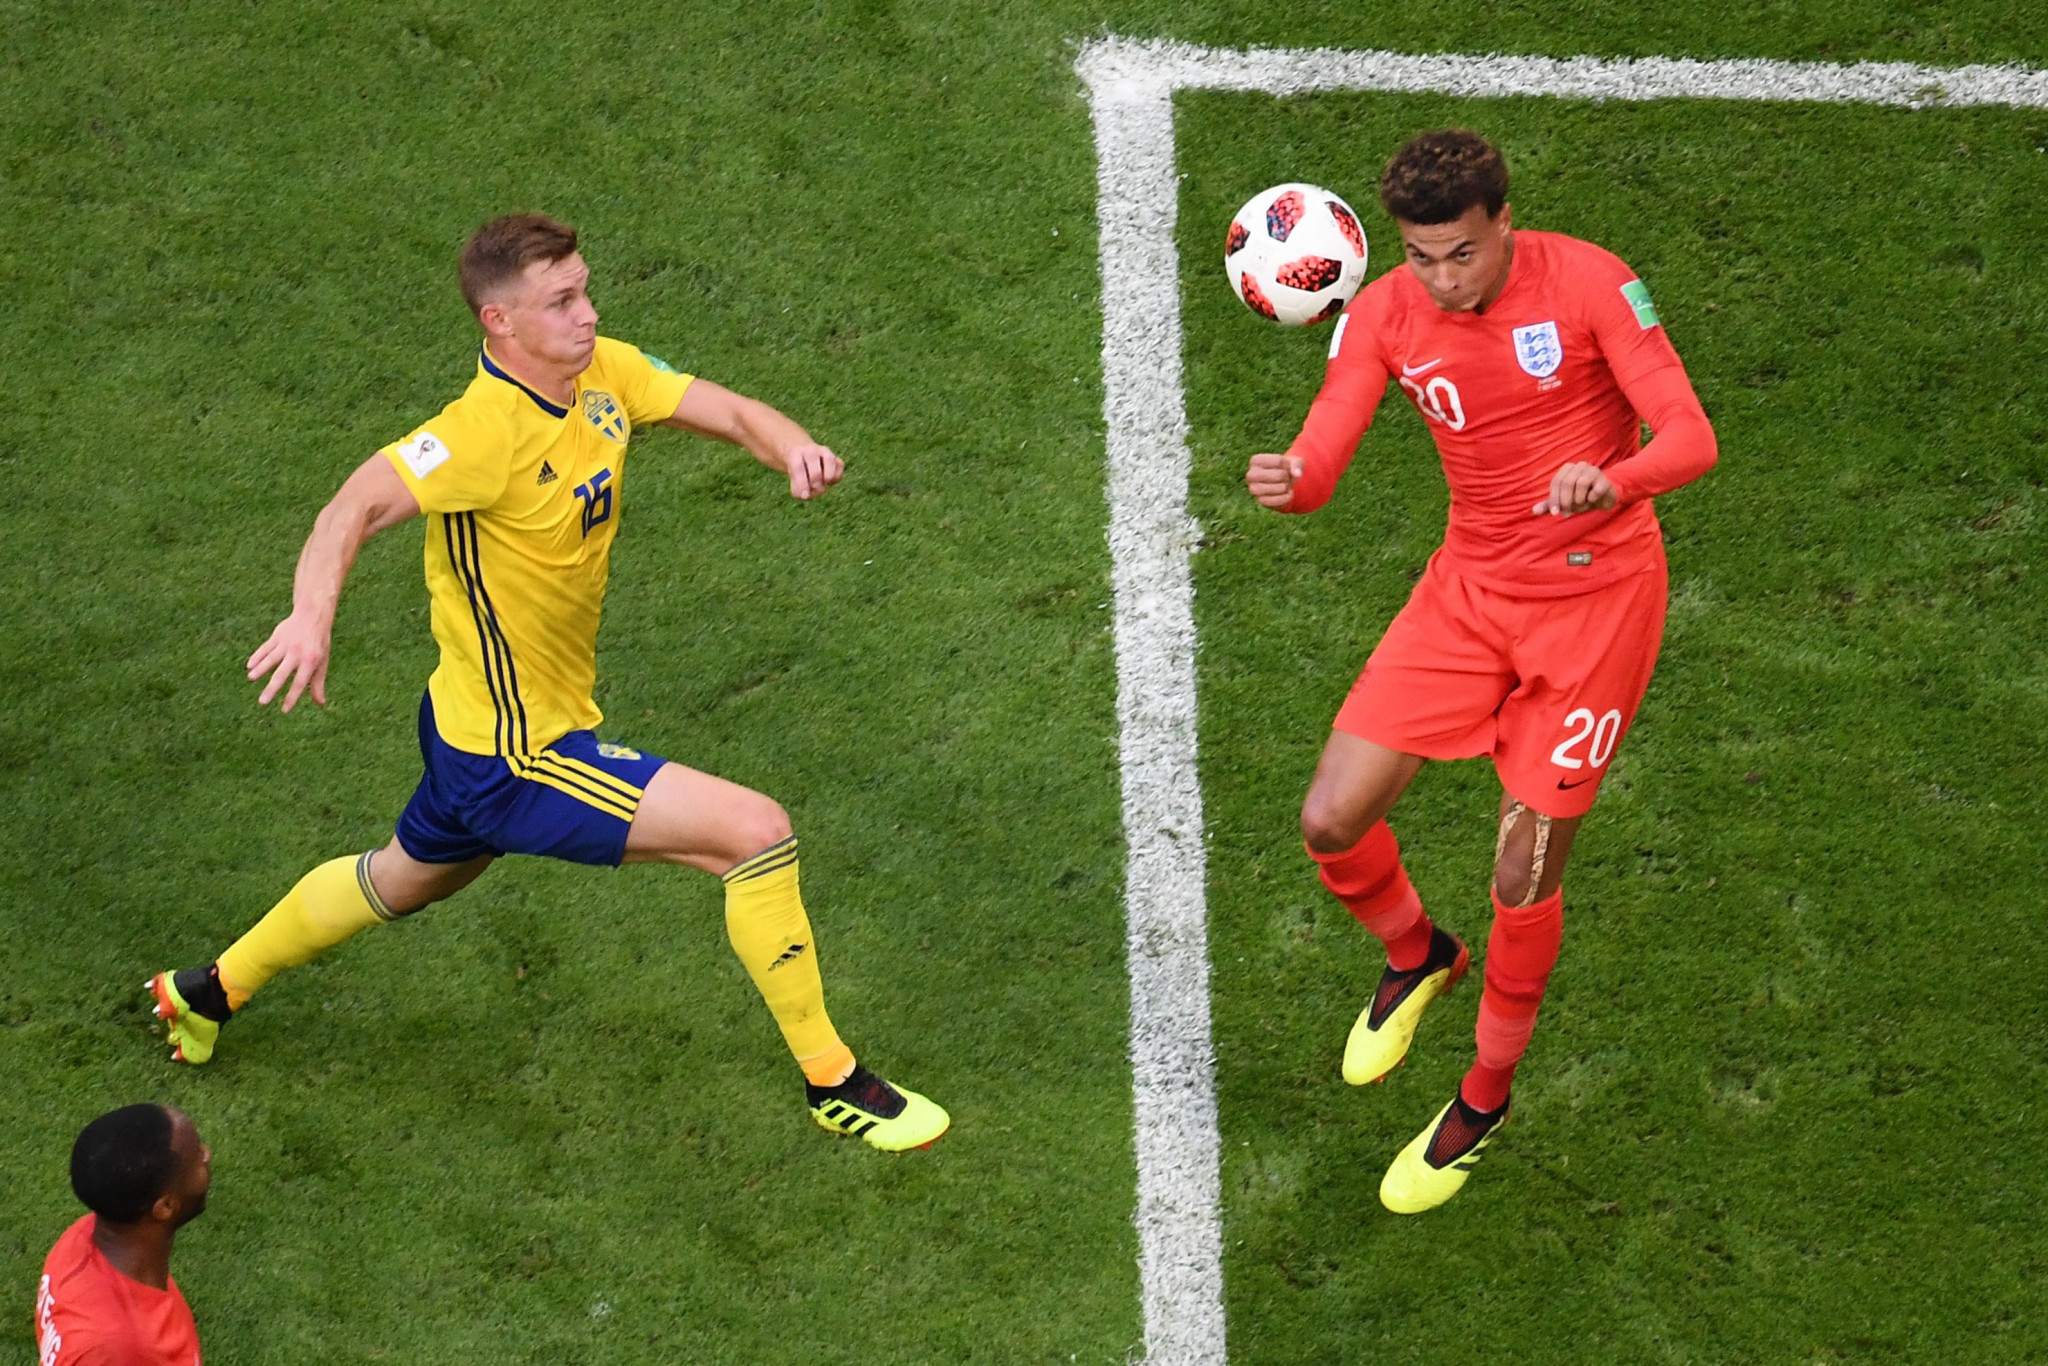 Dele Alli headed home the second goal for England against Sweden ©Getty Images